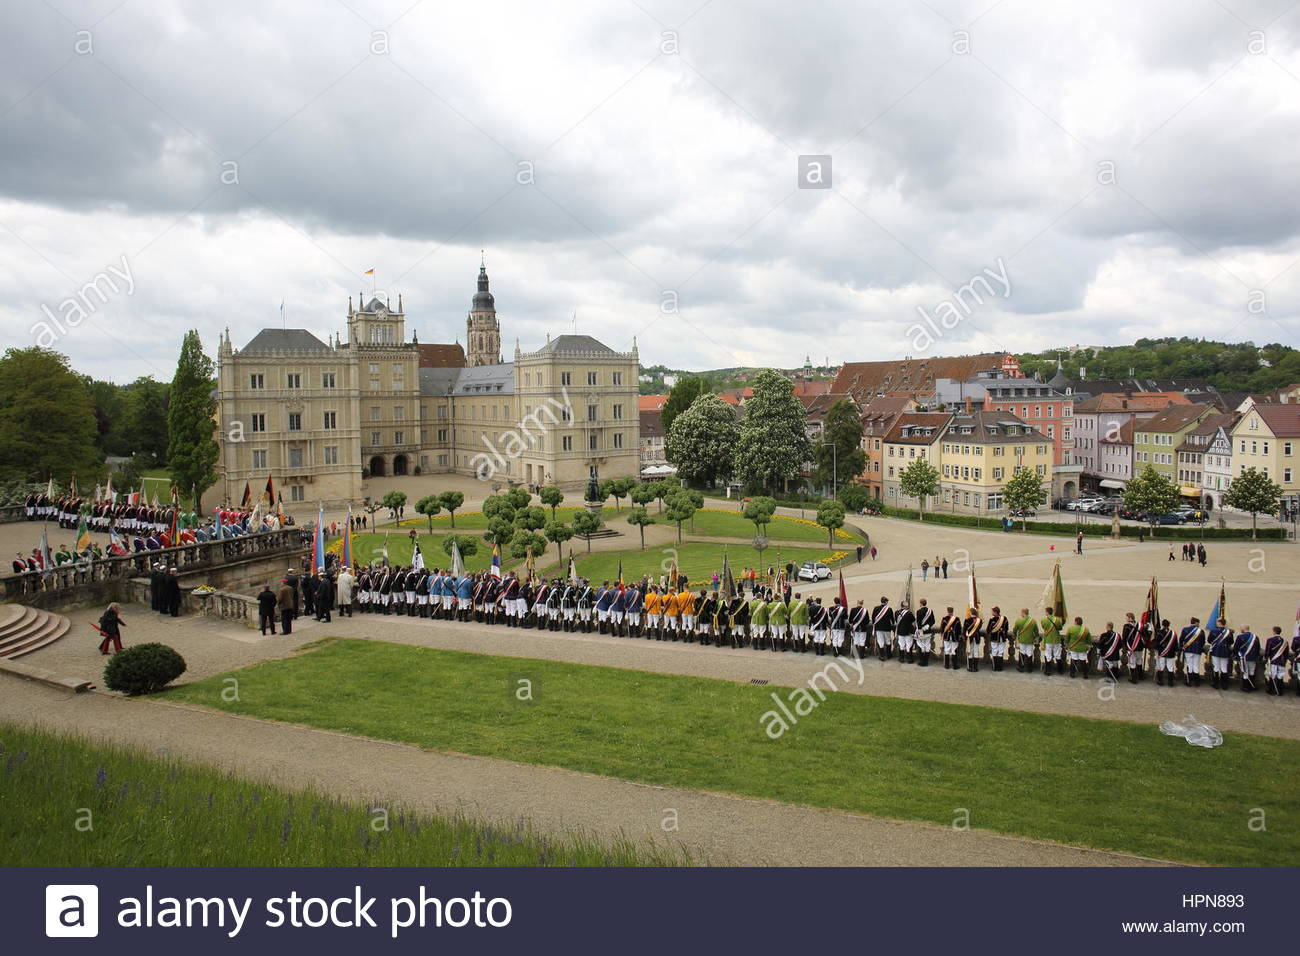 Participants in the Coburger Convent weekend, a Whitsunmeeting of students associations from Germany and beyond, - Stock Image